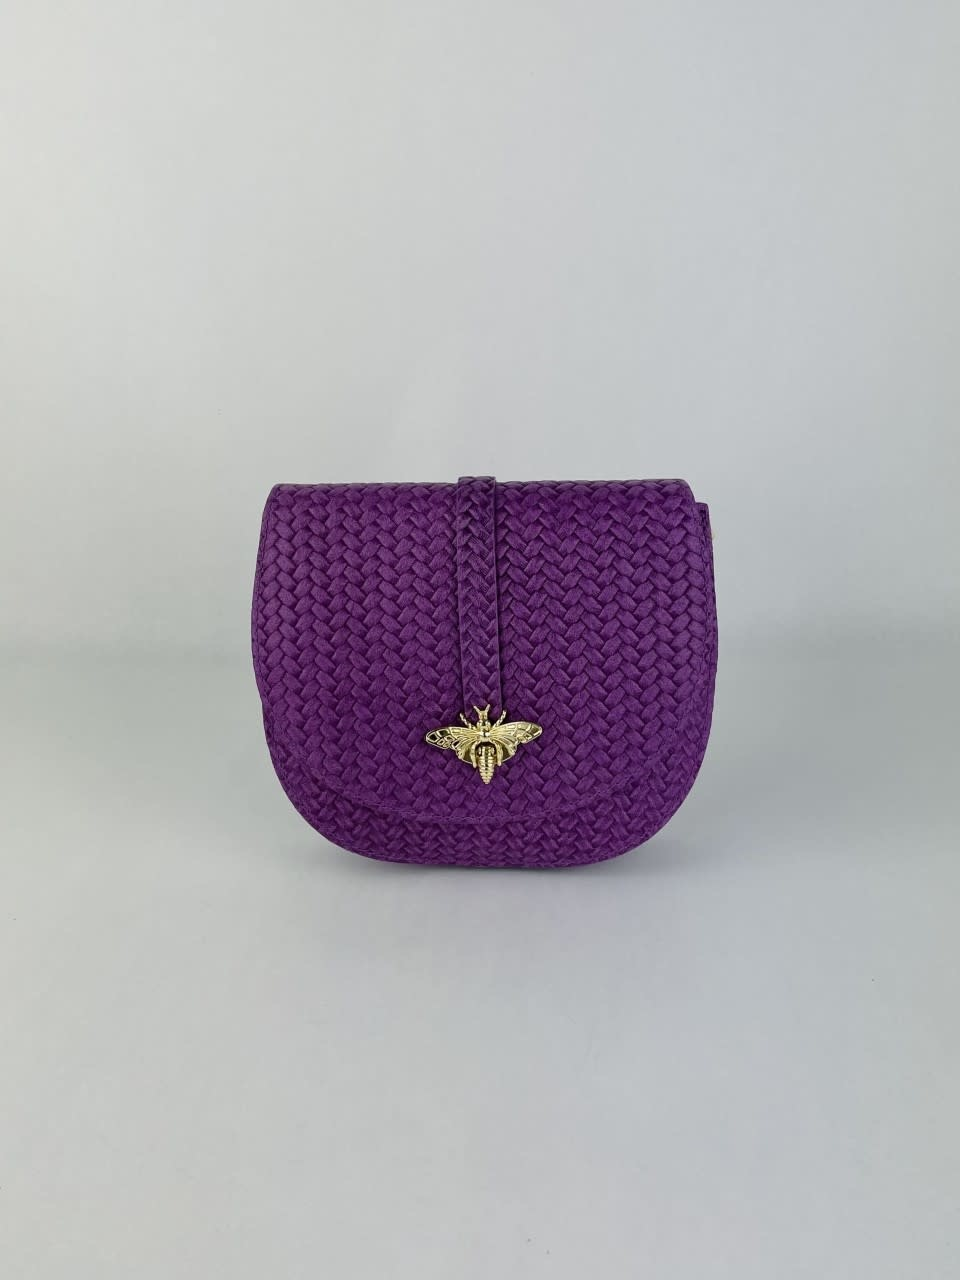 Cléo calf leather dragonfly bag Violet-1